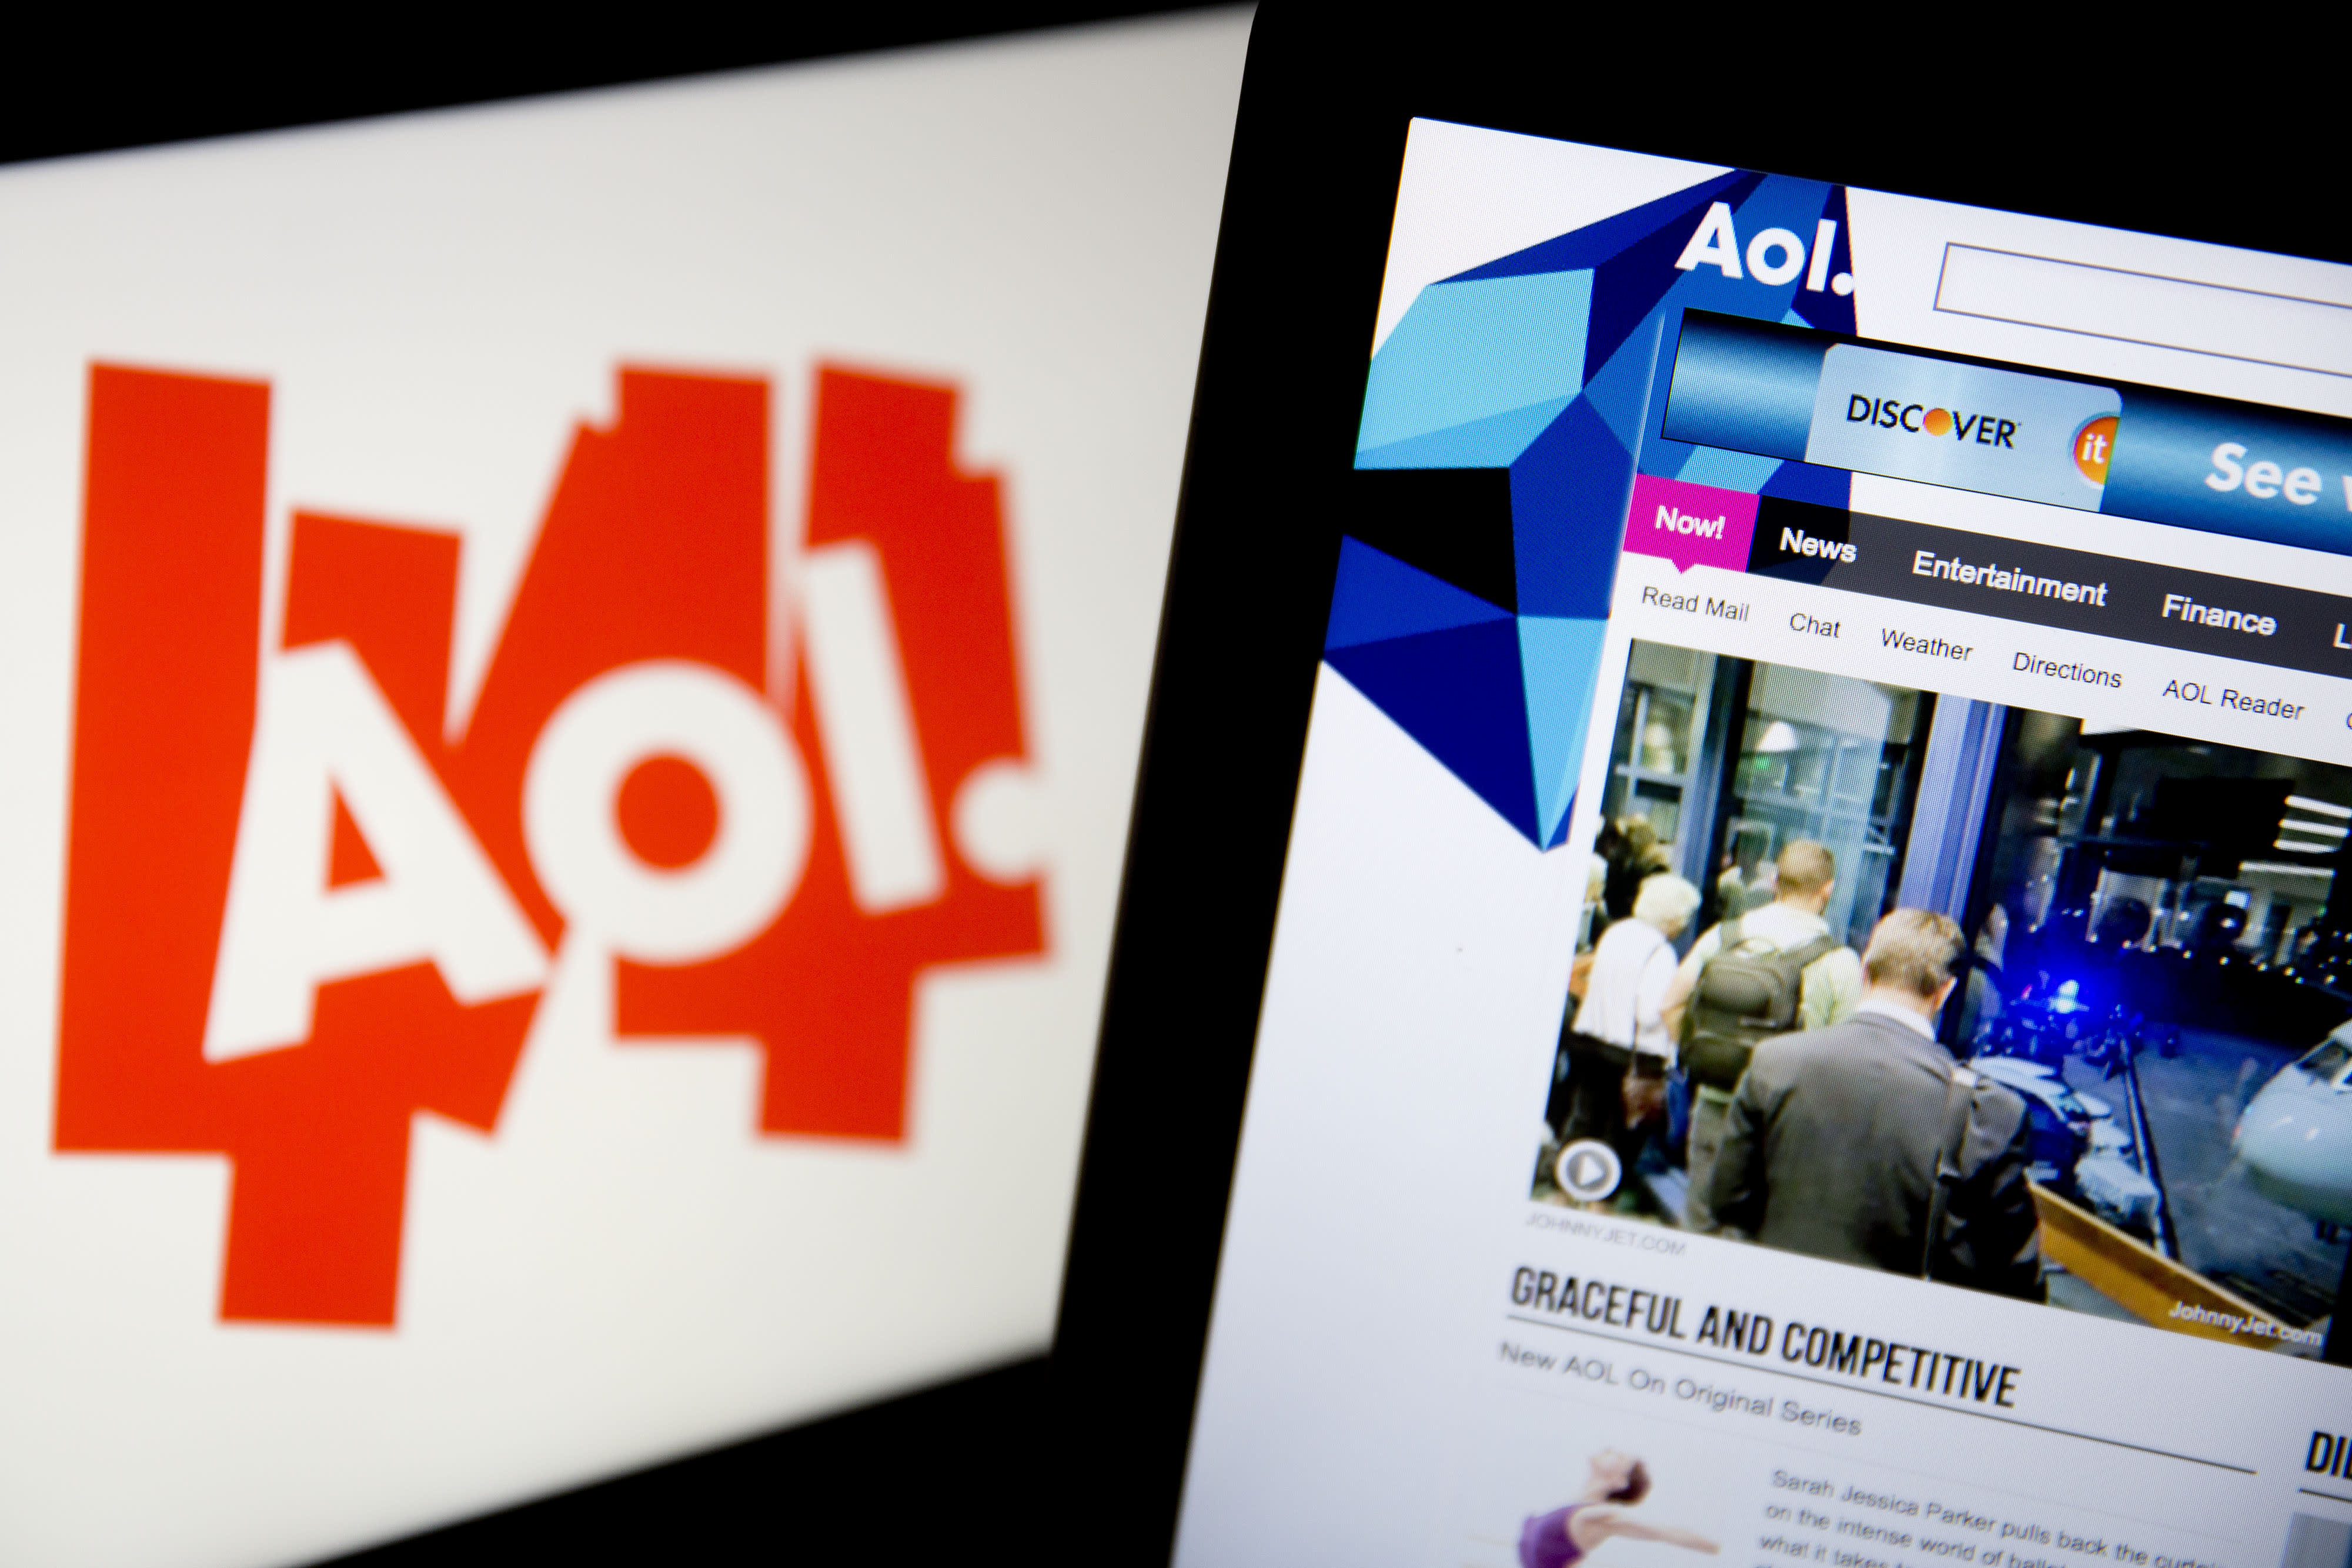 Aol Finance Stock Quotes Microsoft To Exit Addisplay Biz With Aol Deal